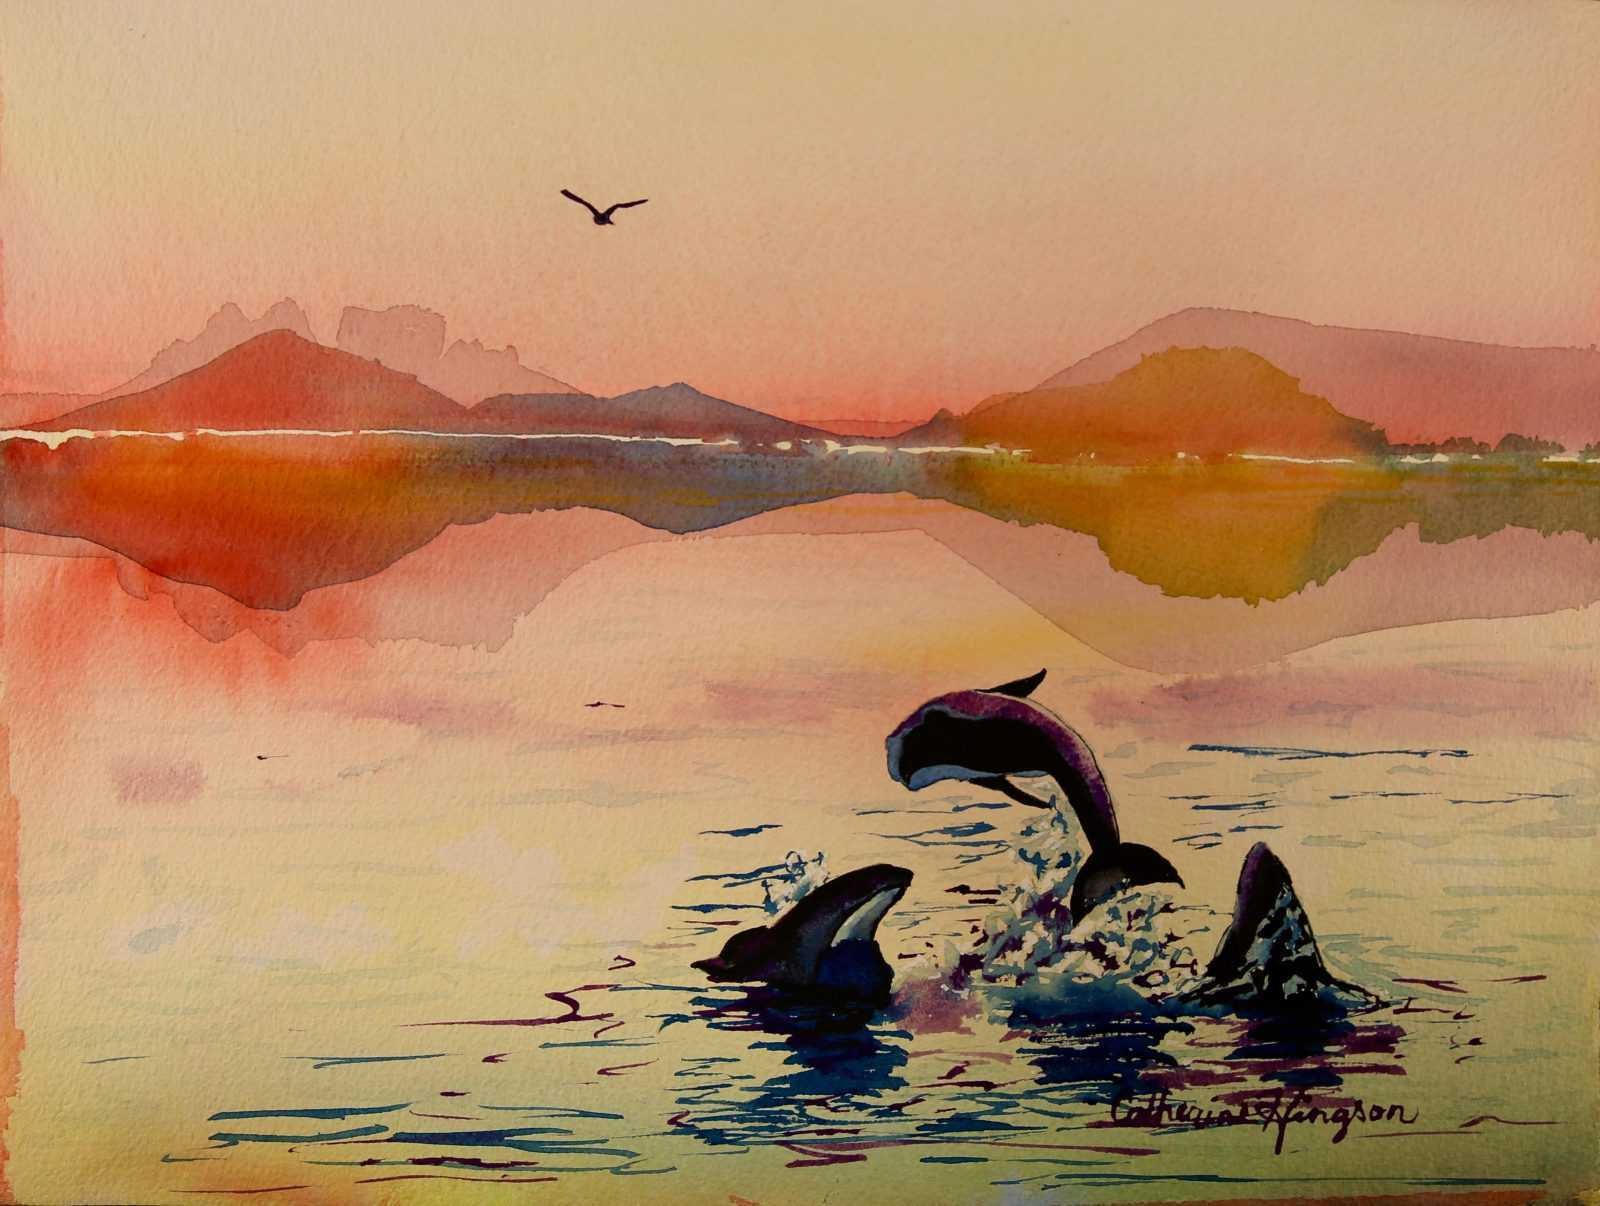 watercolor painting of orchas leaping from water at sunset